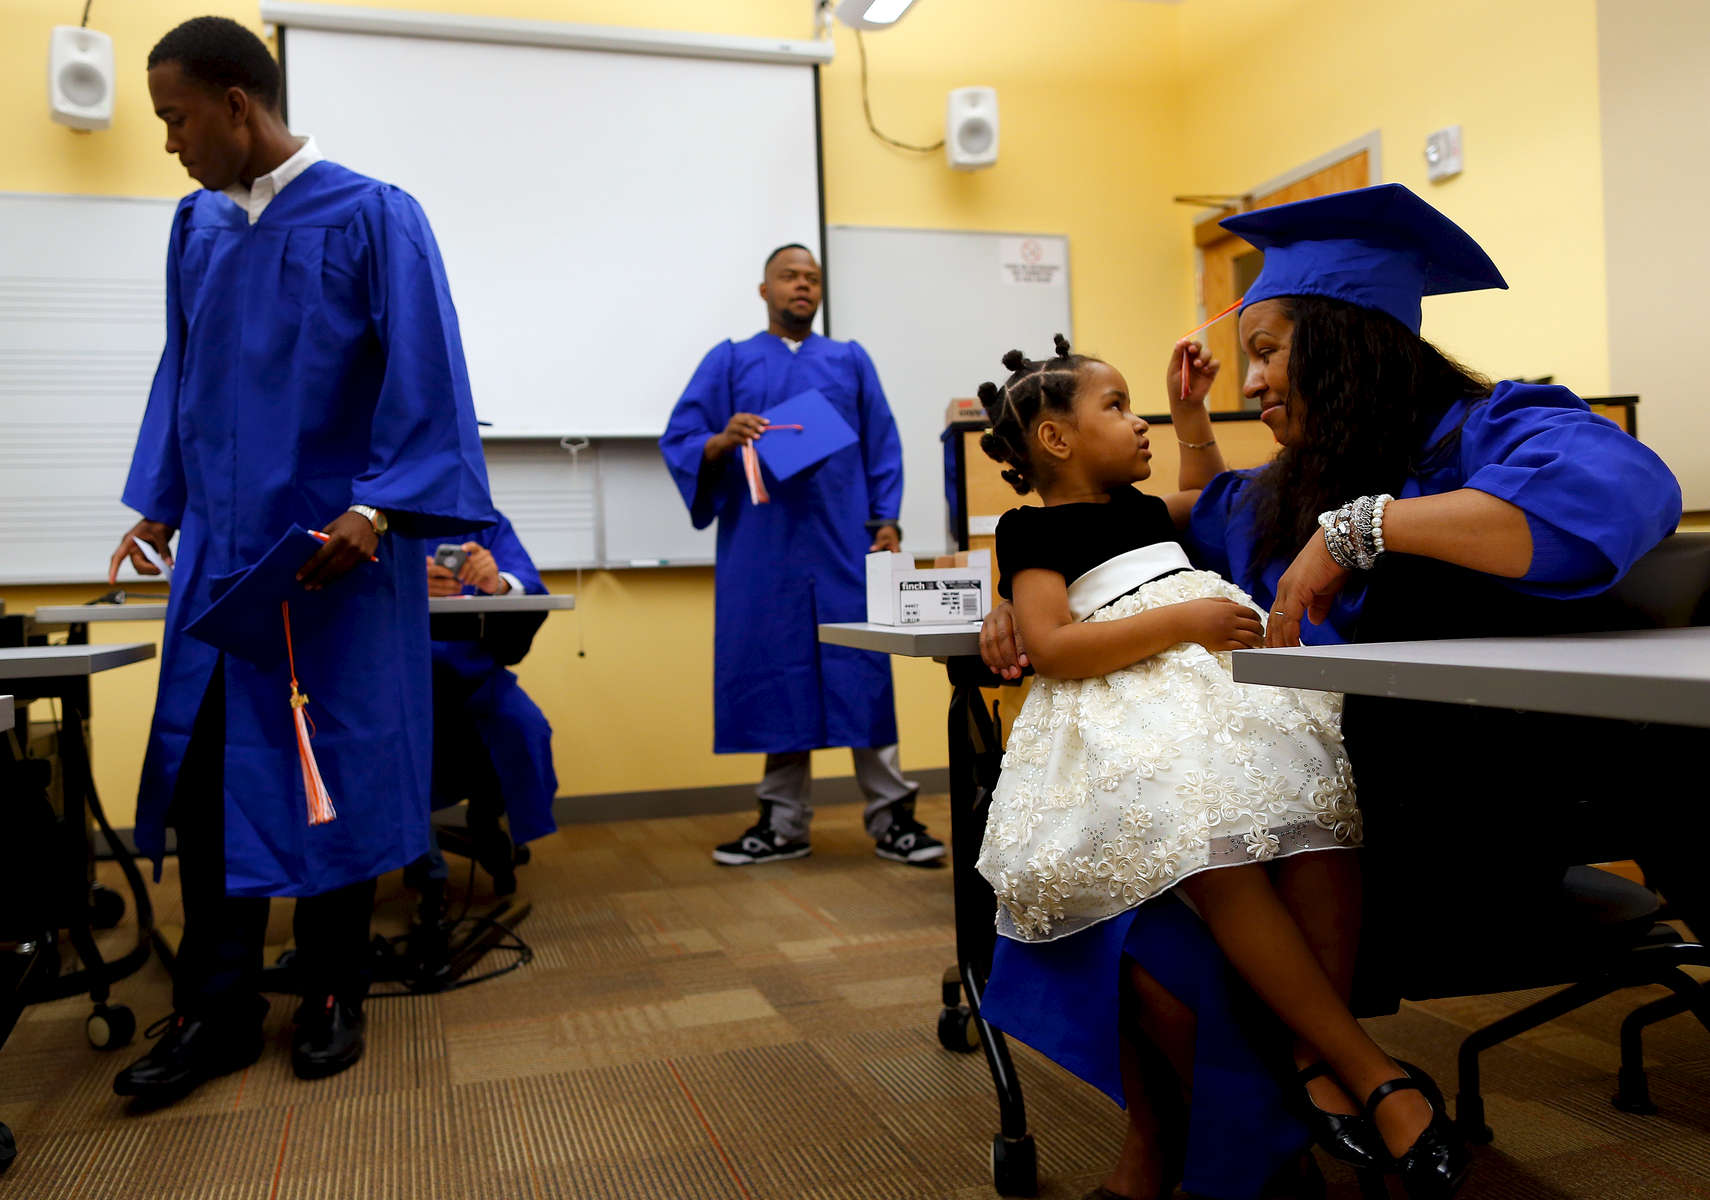 Boston, Massachusetts -- 08/27/2014-- Sanjoana Fernandes, 34, (R) who is headed to Bunker Hill Community College leans in as her daughter Synali, 3, grabs the tassel on her graduation cap before College Bound Dorchester Matriculation Ceremony in Boston, Massachusetts August 27, 2014.